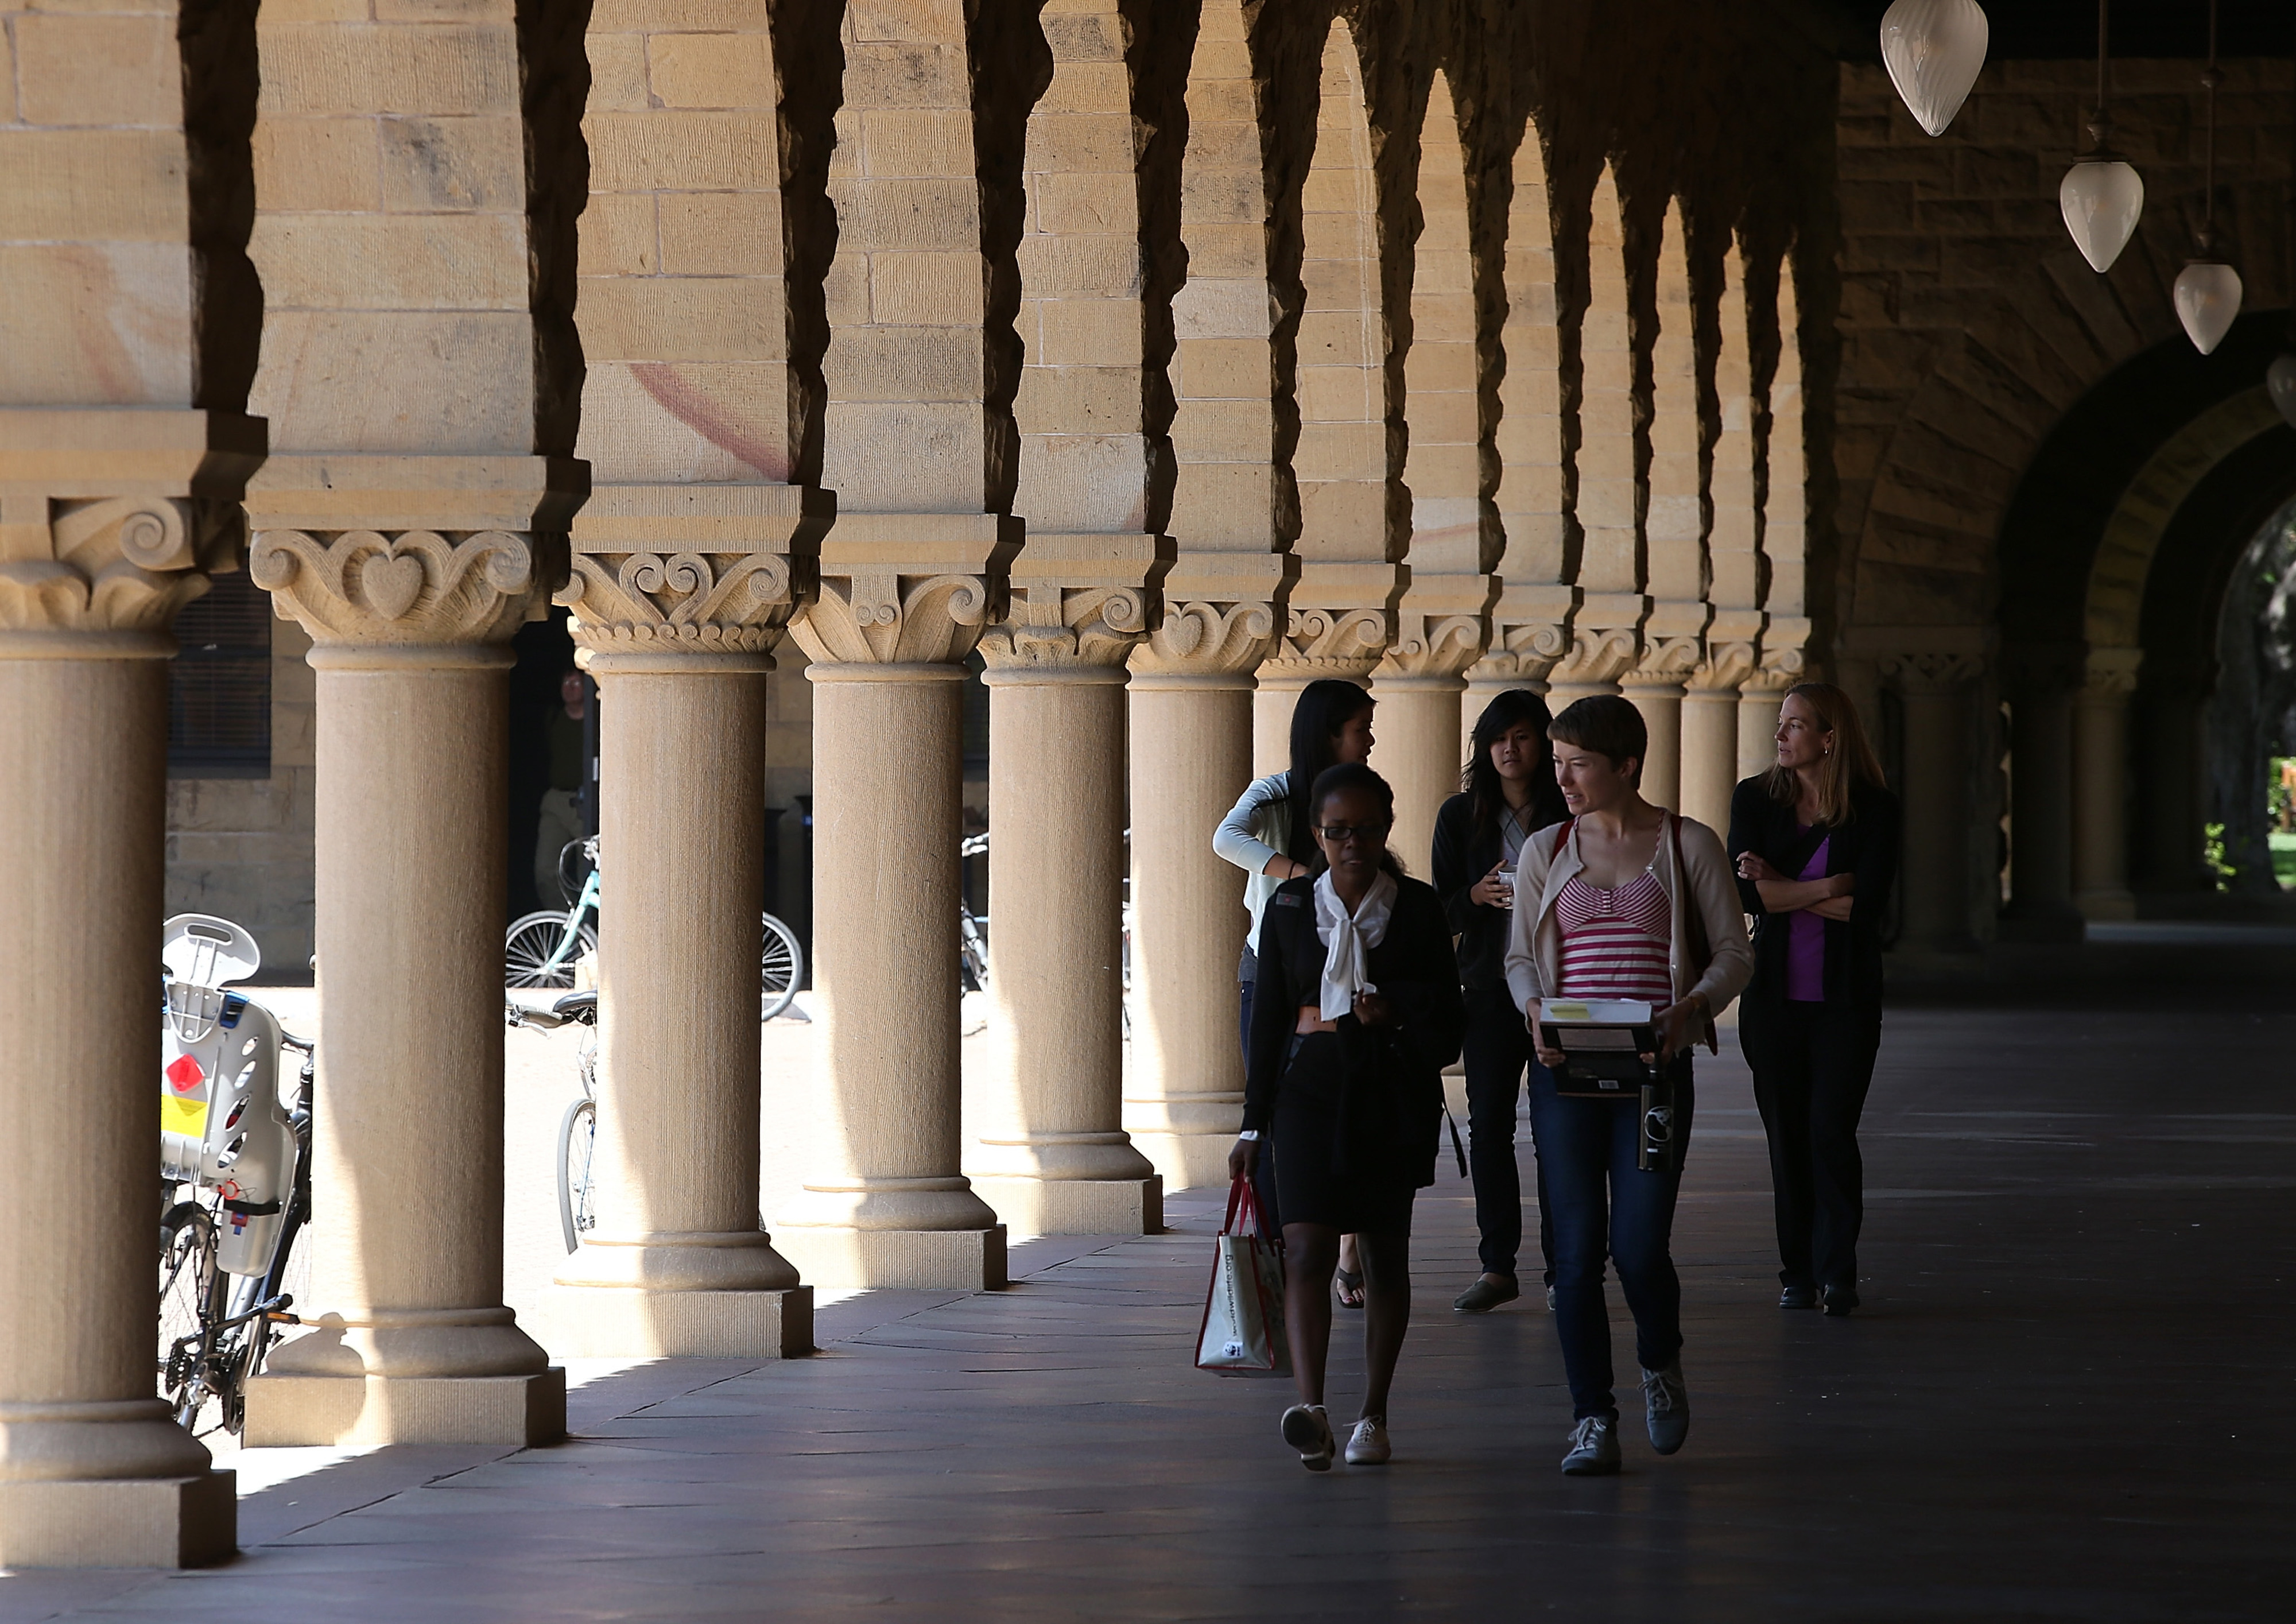 Students on the Stanford University campus walk down a pillared archway.